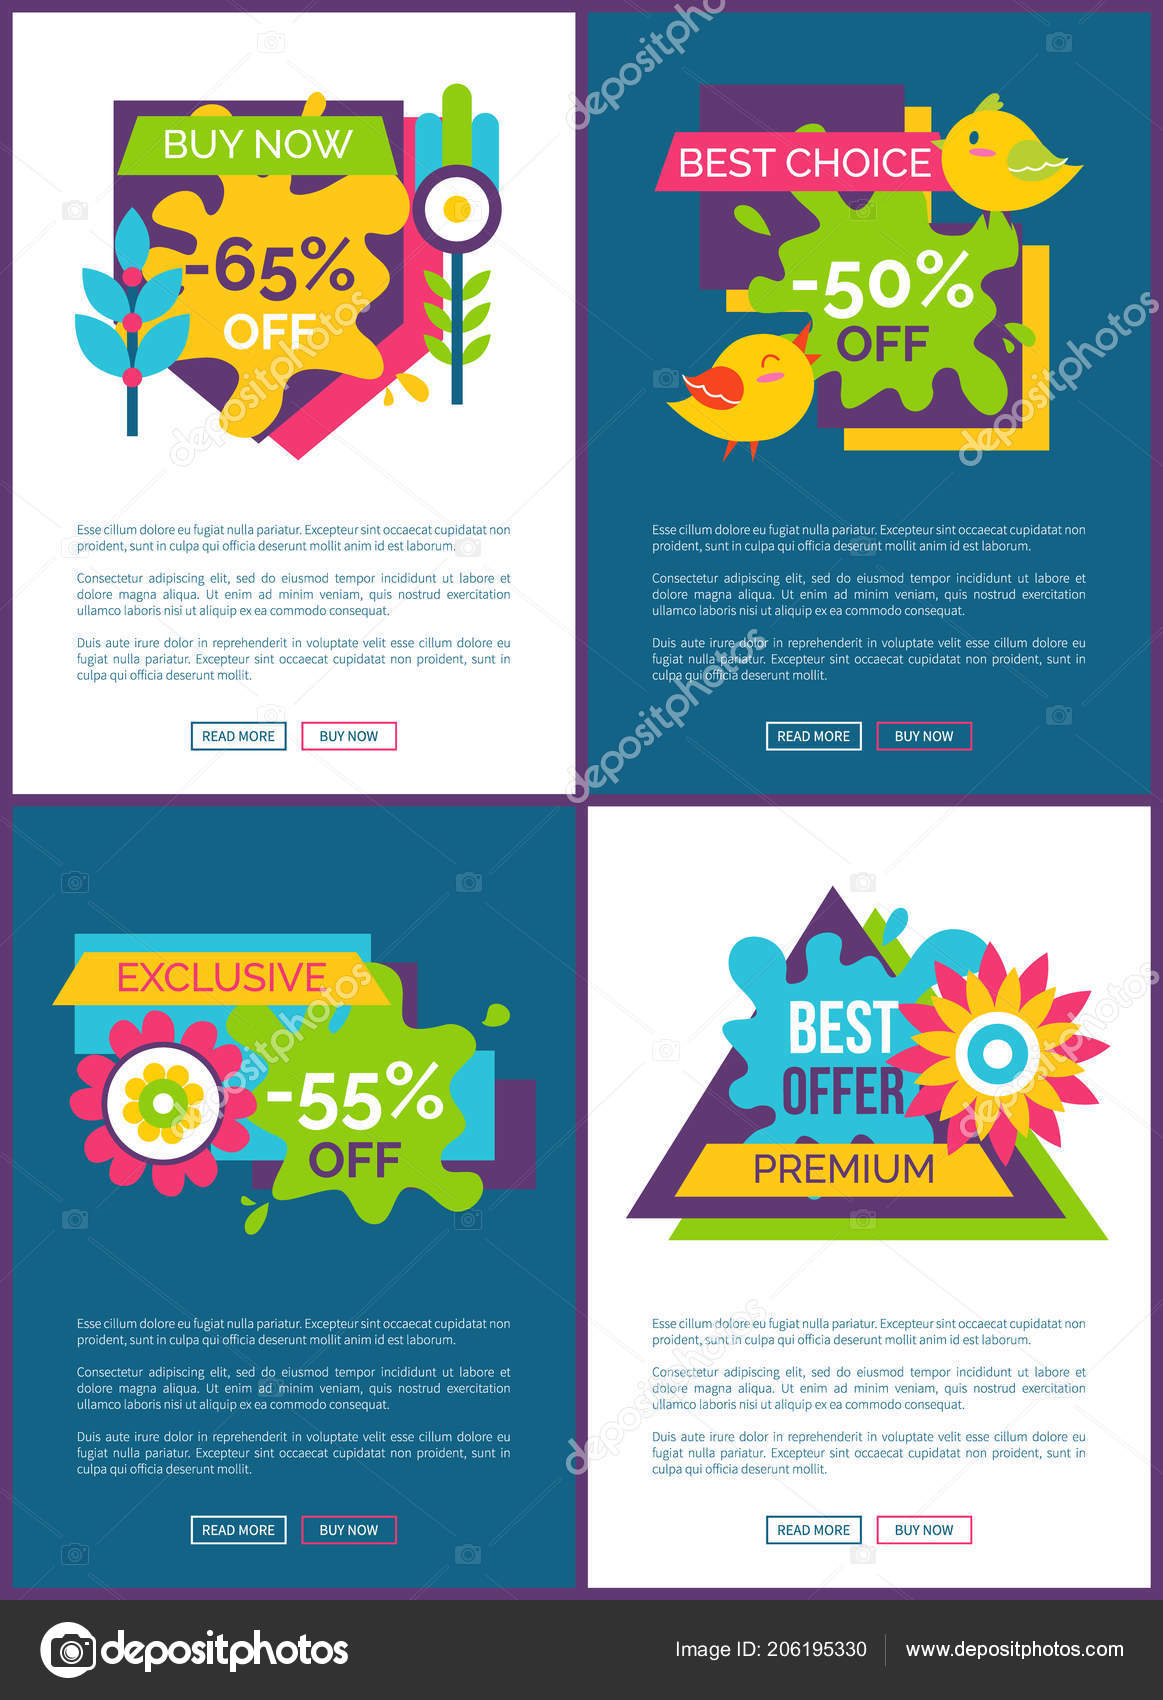 2c043afa5 Best offer with 50 off online promo banners set. Exclusive premium discount  commercial Internet pages templates. Big sale posters vector illustrations  ...